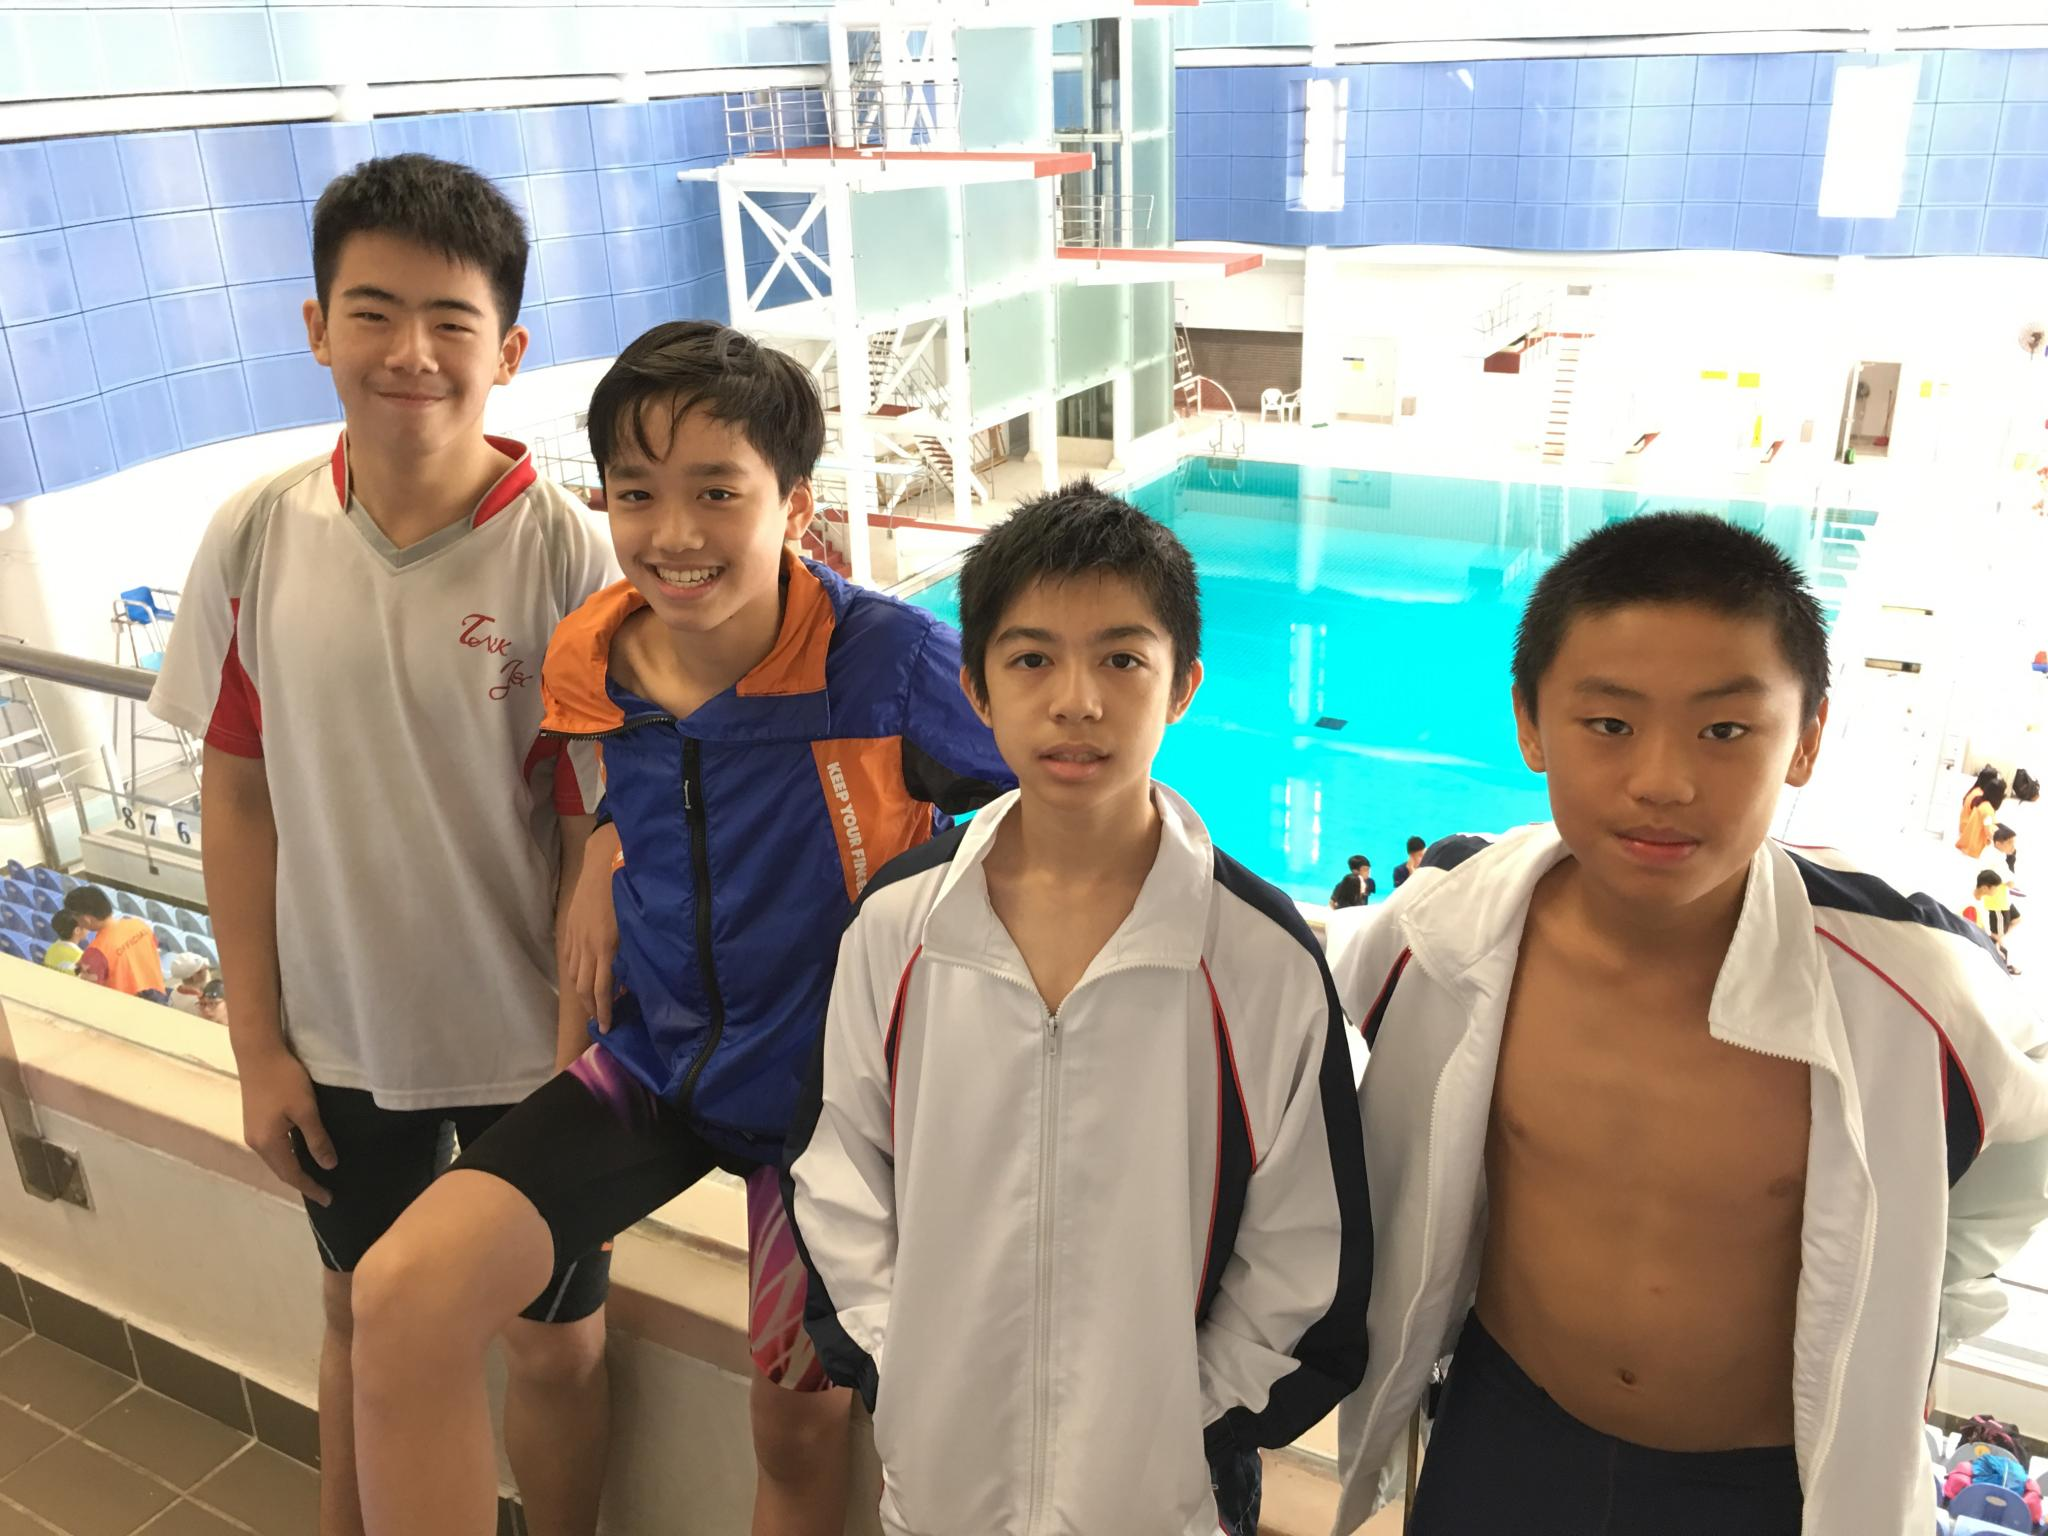 Inter school swimming competition 2016 2017 w tnkjsc Tong high school swimming pool